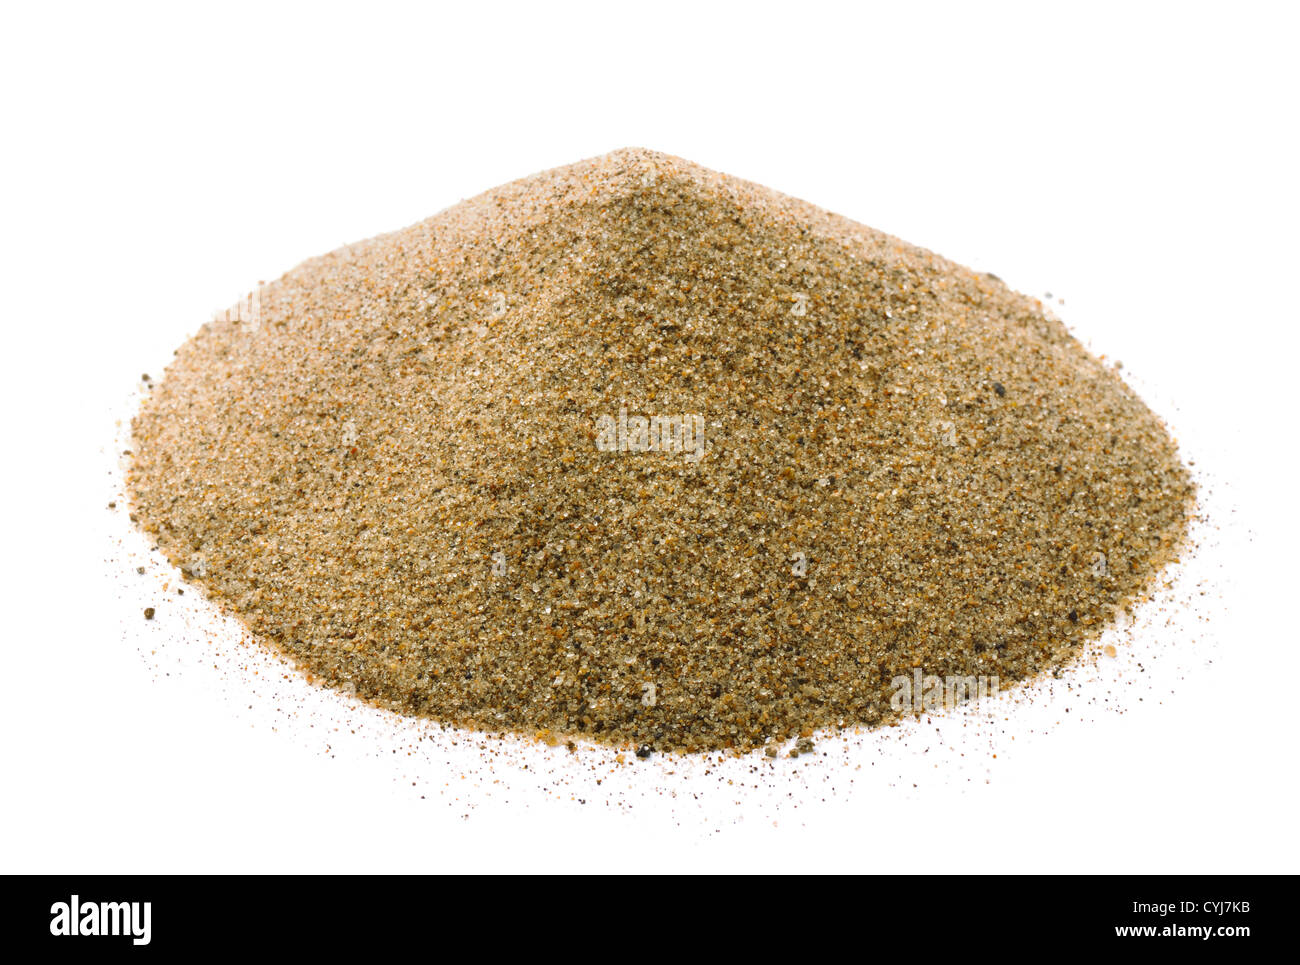 Pile of dry sand isolated on white - Stock Image